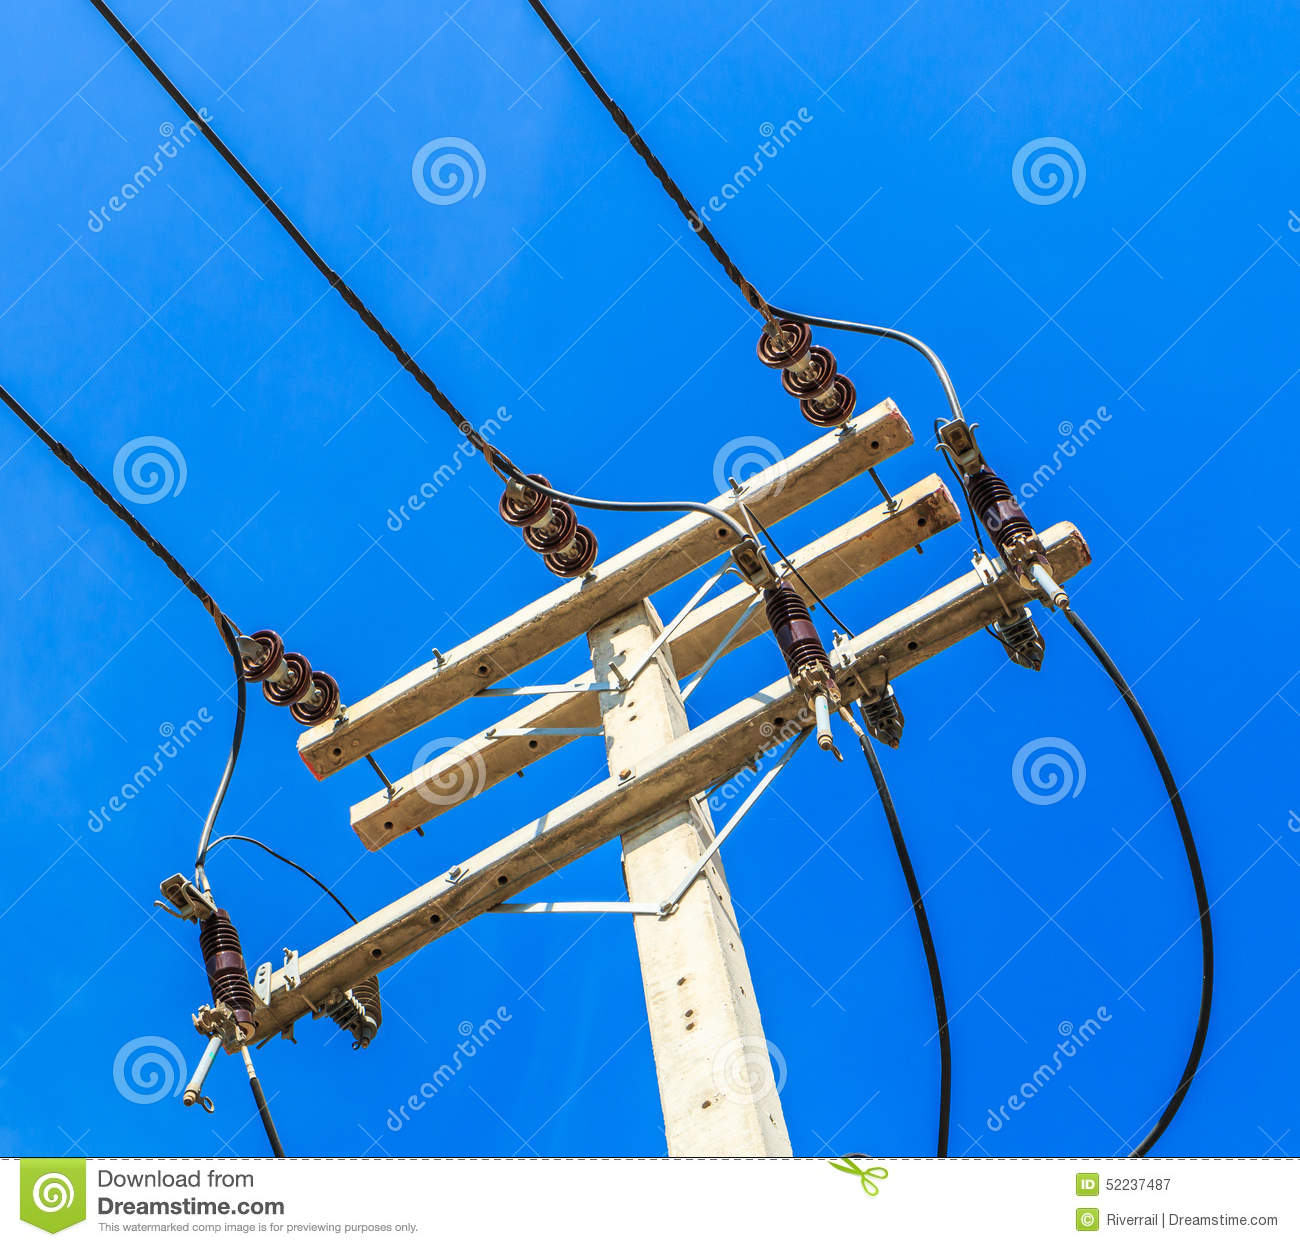 High Voltage Electrical Wire : Electrical post royalty free stock image cartoondealer